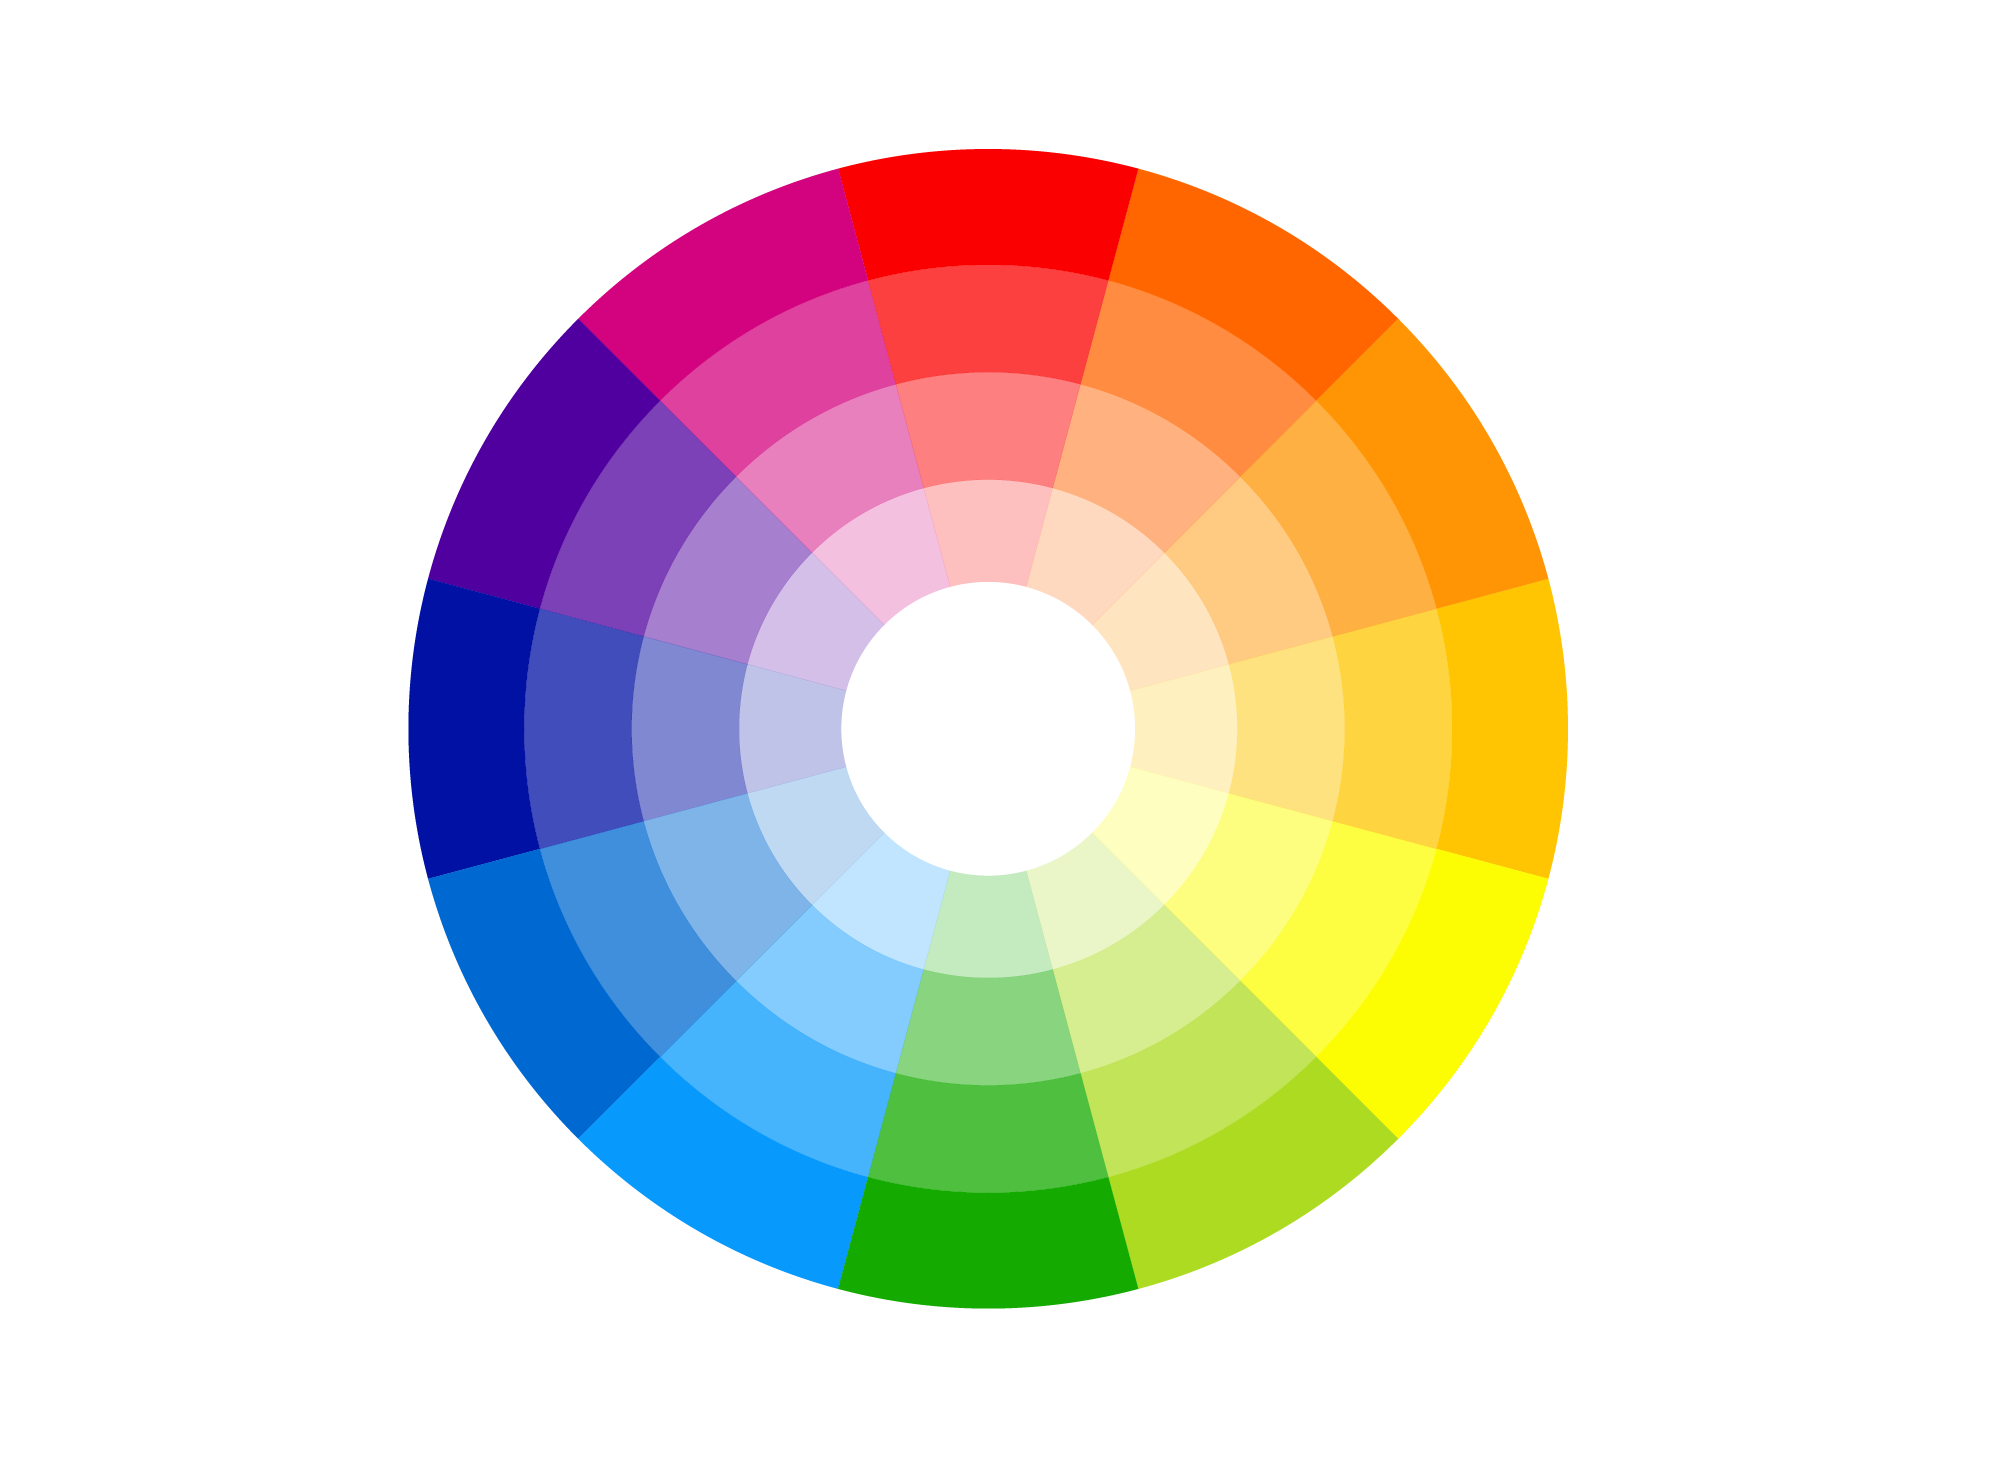 Color Schemes Simple Using Color Schemes In Mobile Ui Design  Sitepoint Inspiration Design